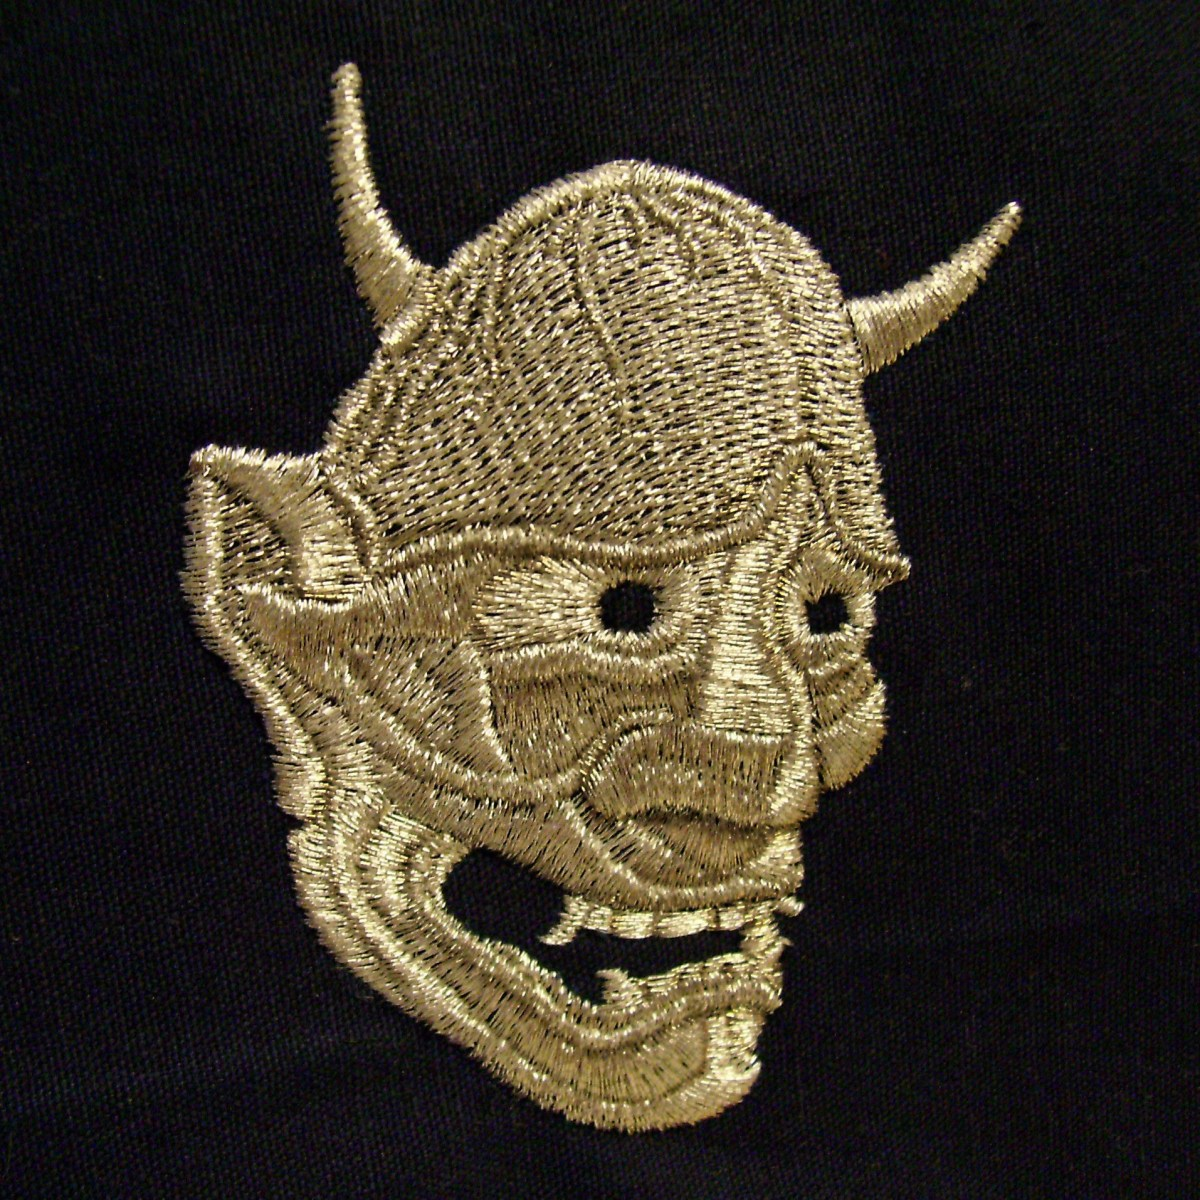 Stitch Types In Machine Embroidery And Digitizing The Only Stitch